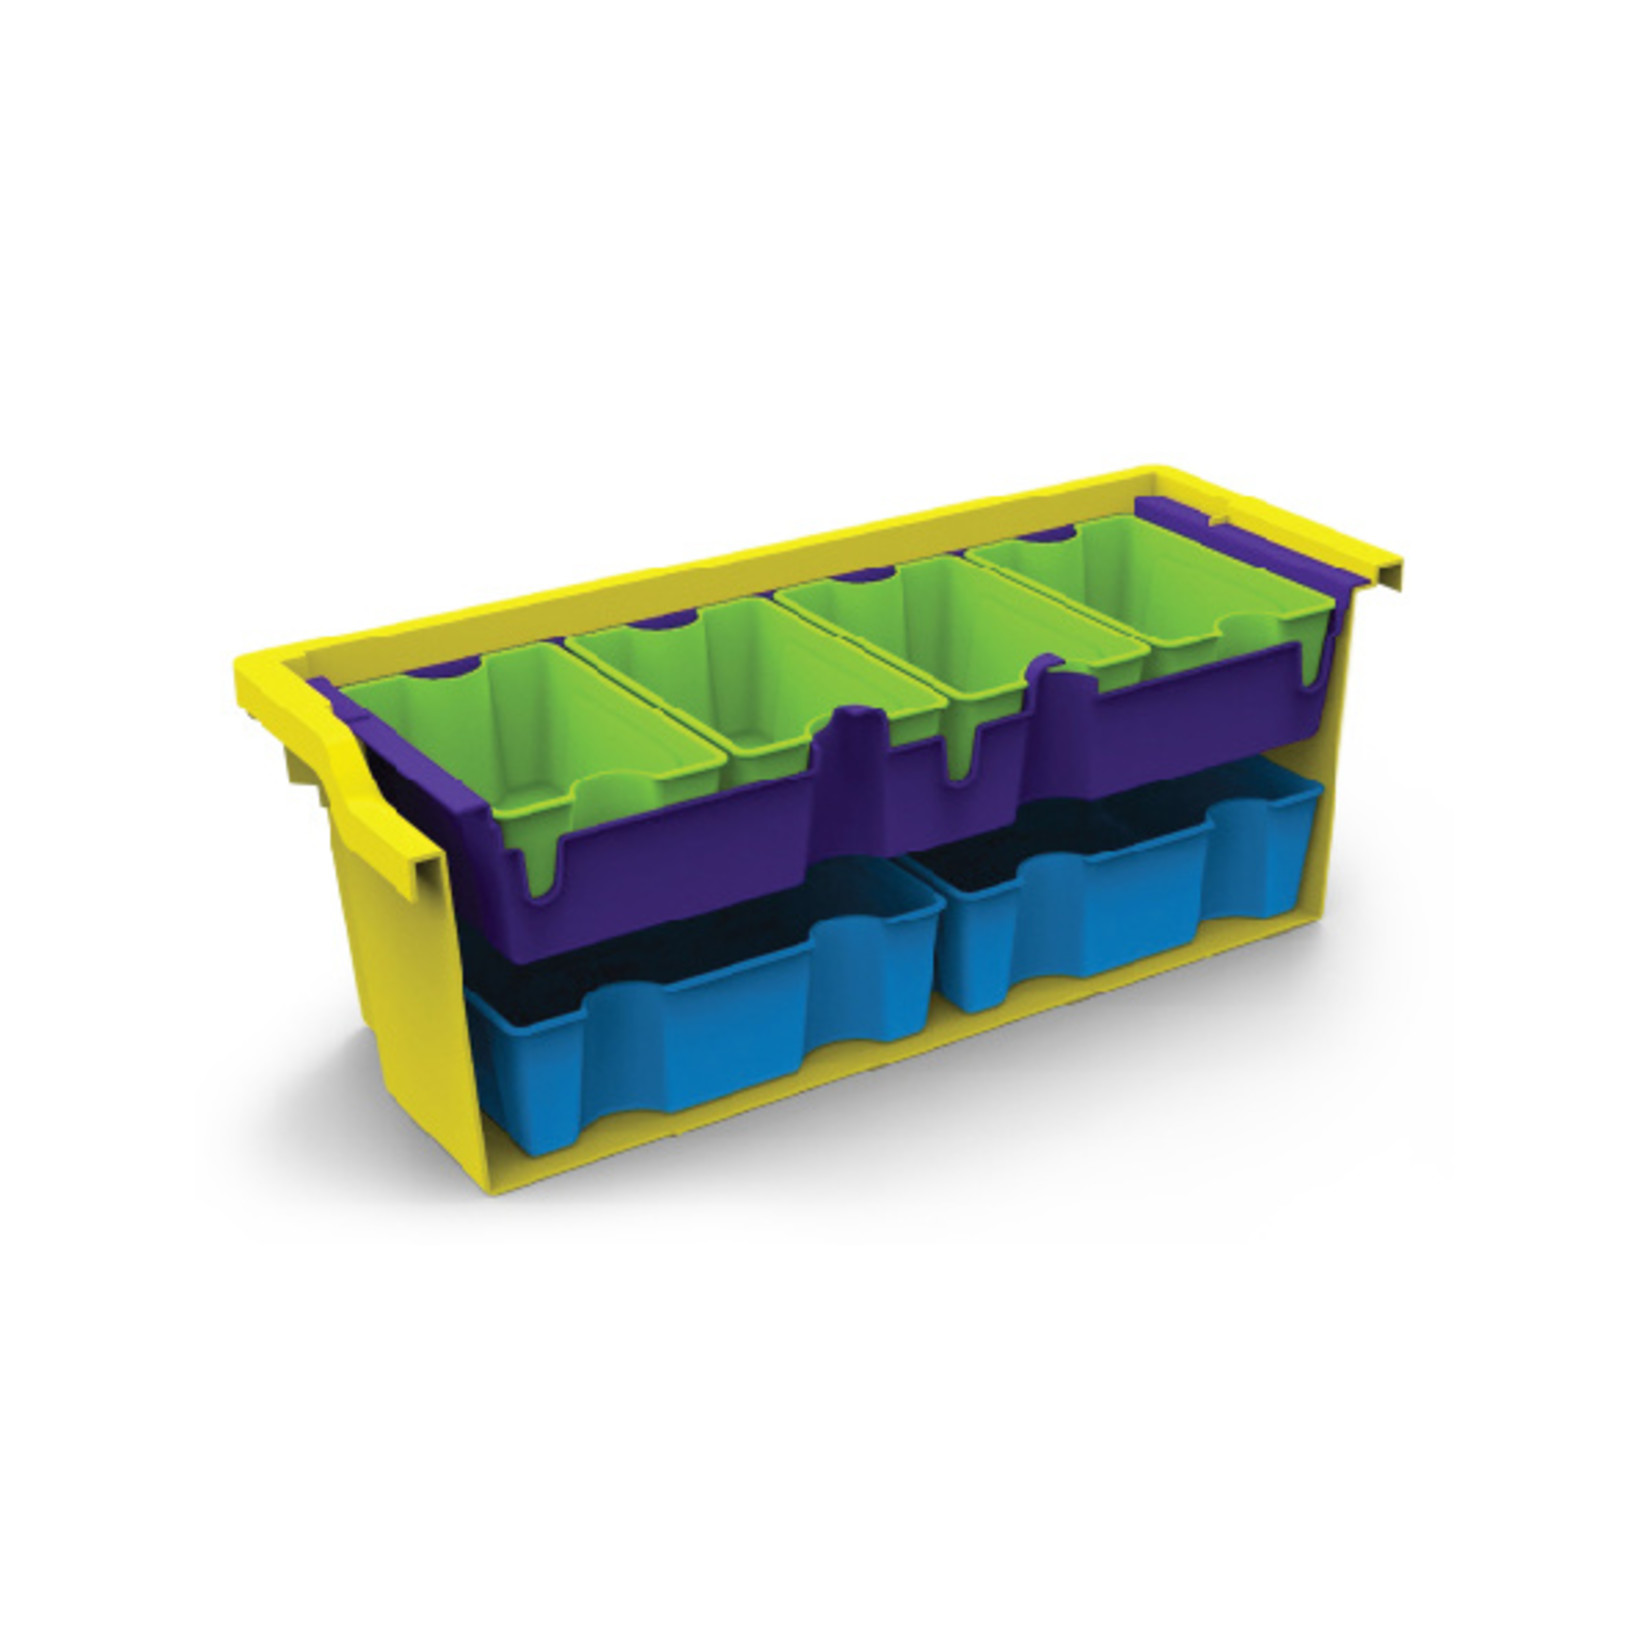 Gratnells Small SortED insert jolly lime antimicrobial